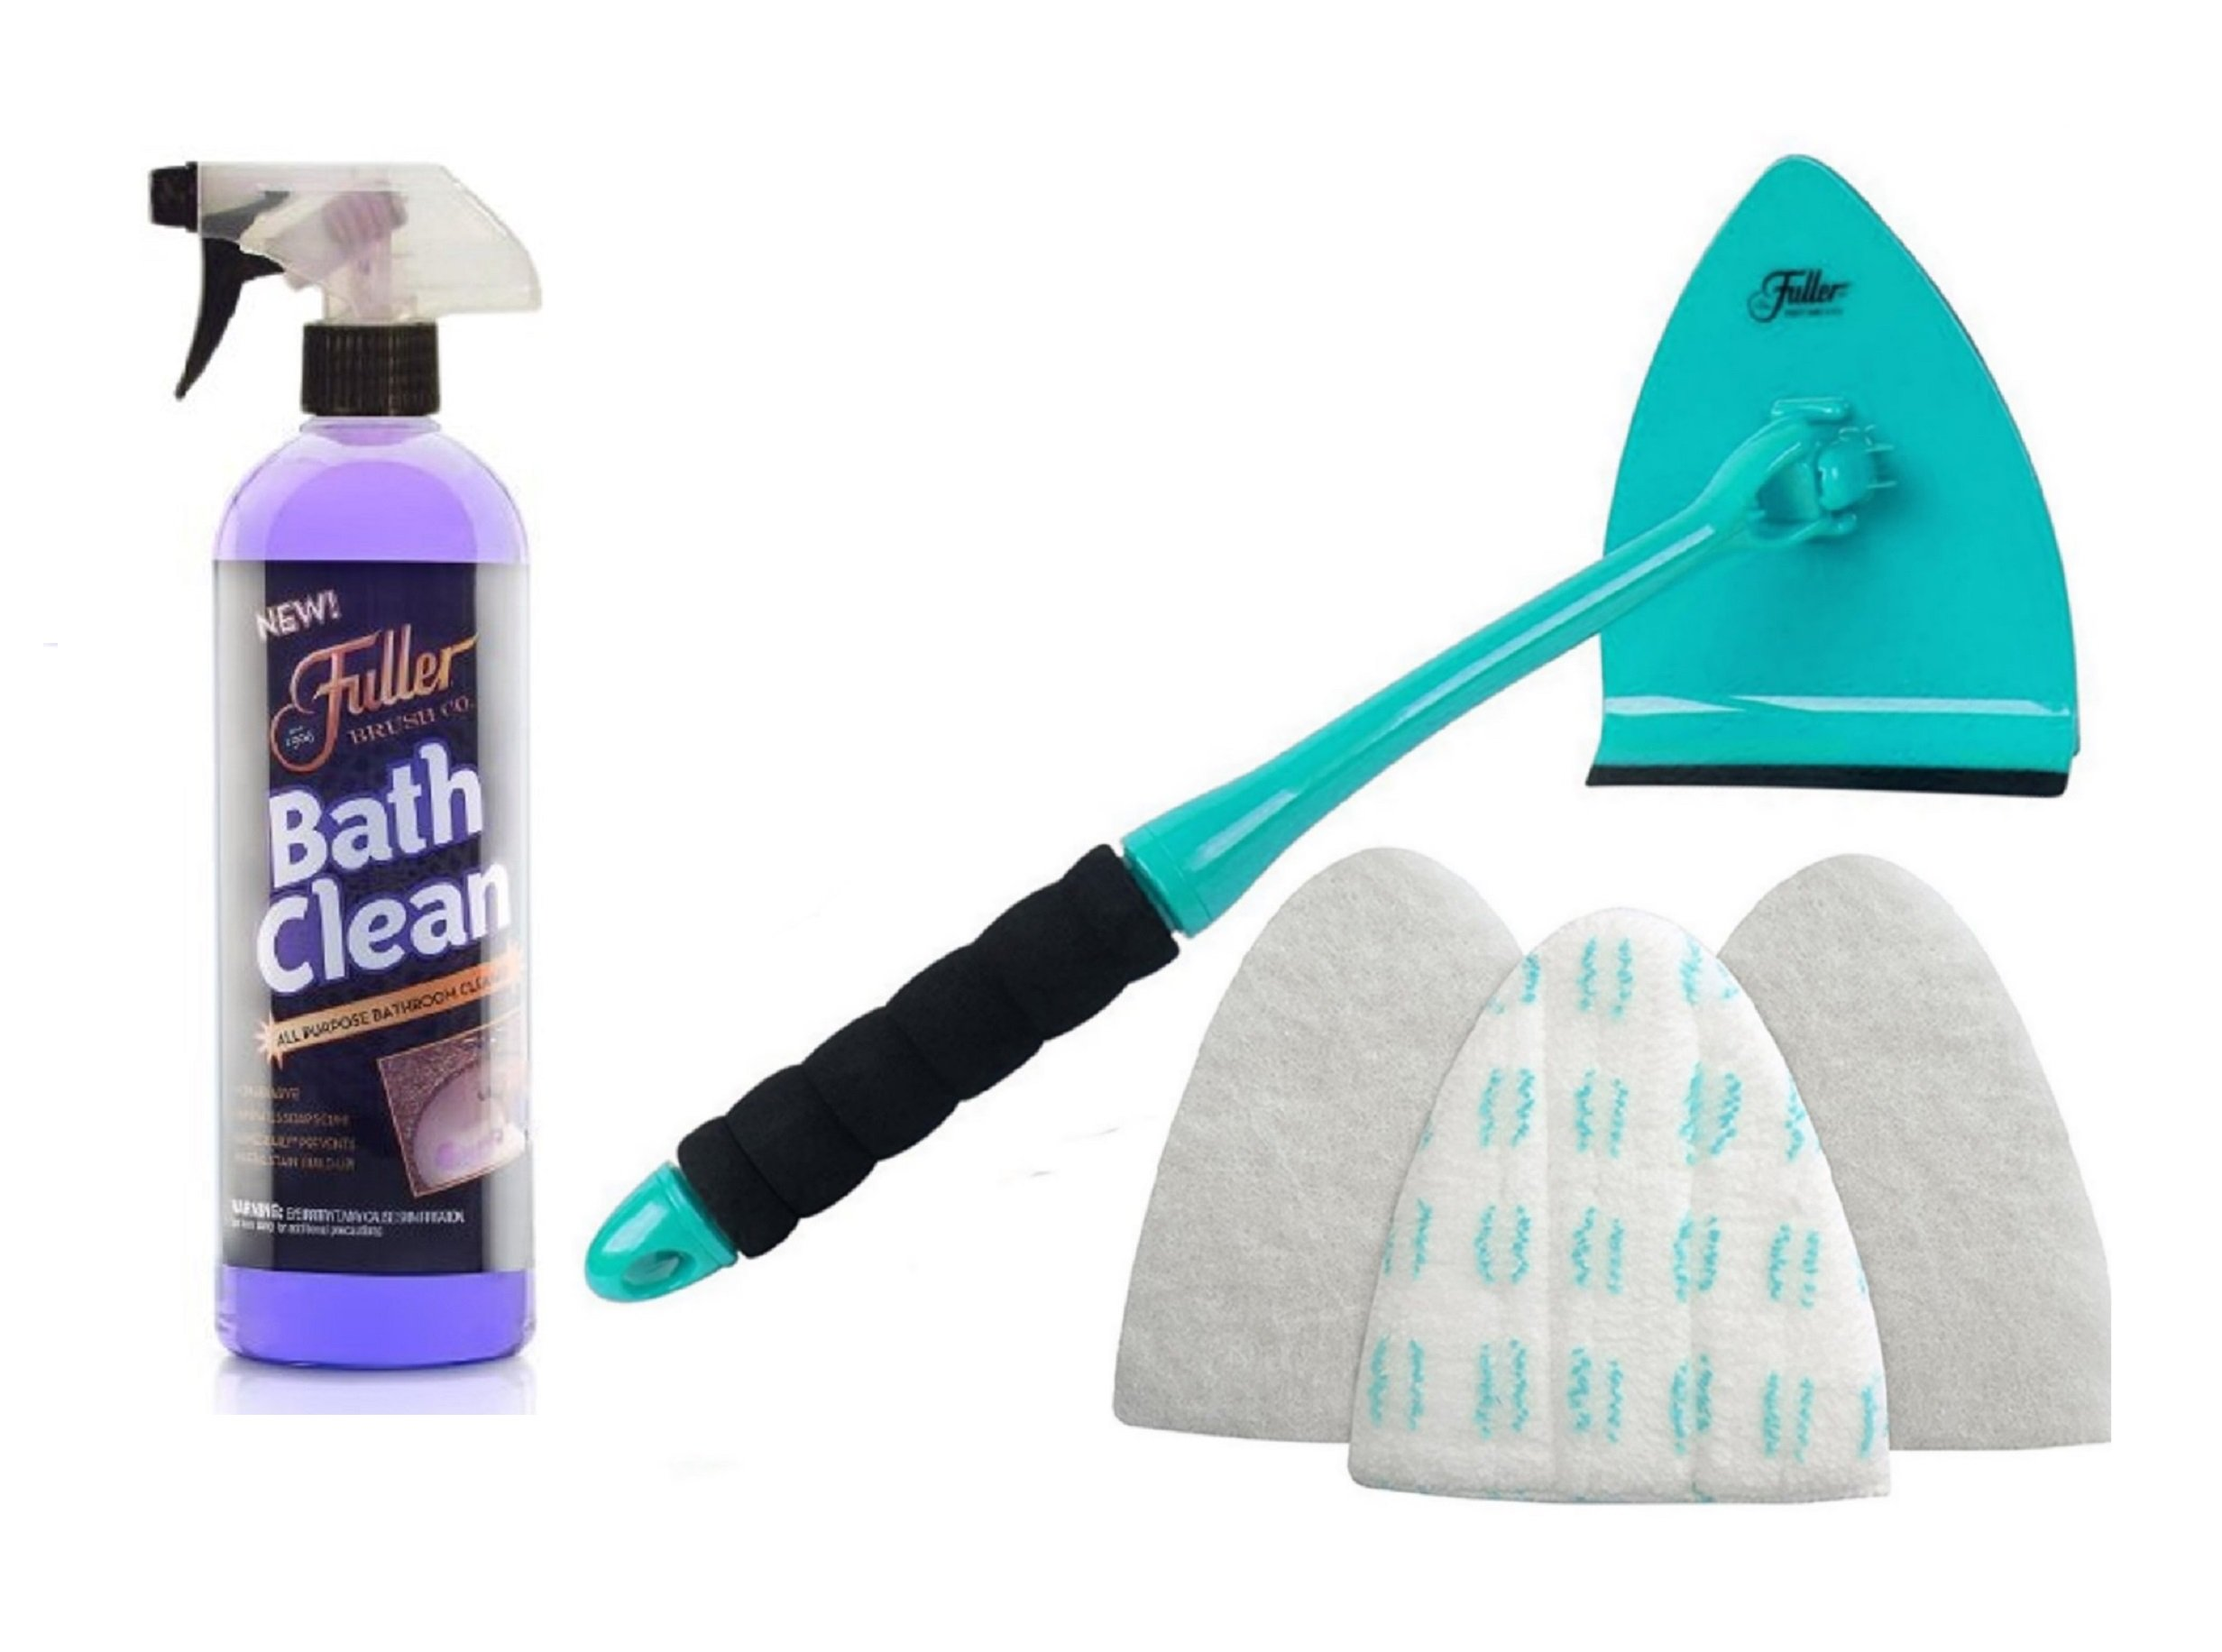 Fuller Brush BathClean Tile and Bathroom Scrubbing Kit with Big EZ Bath Scrubber & Squeege by Fuller Brush